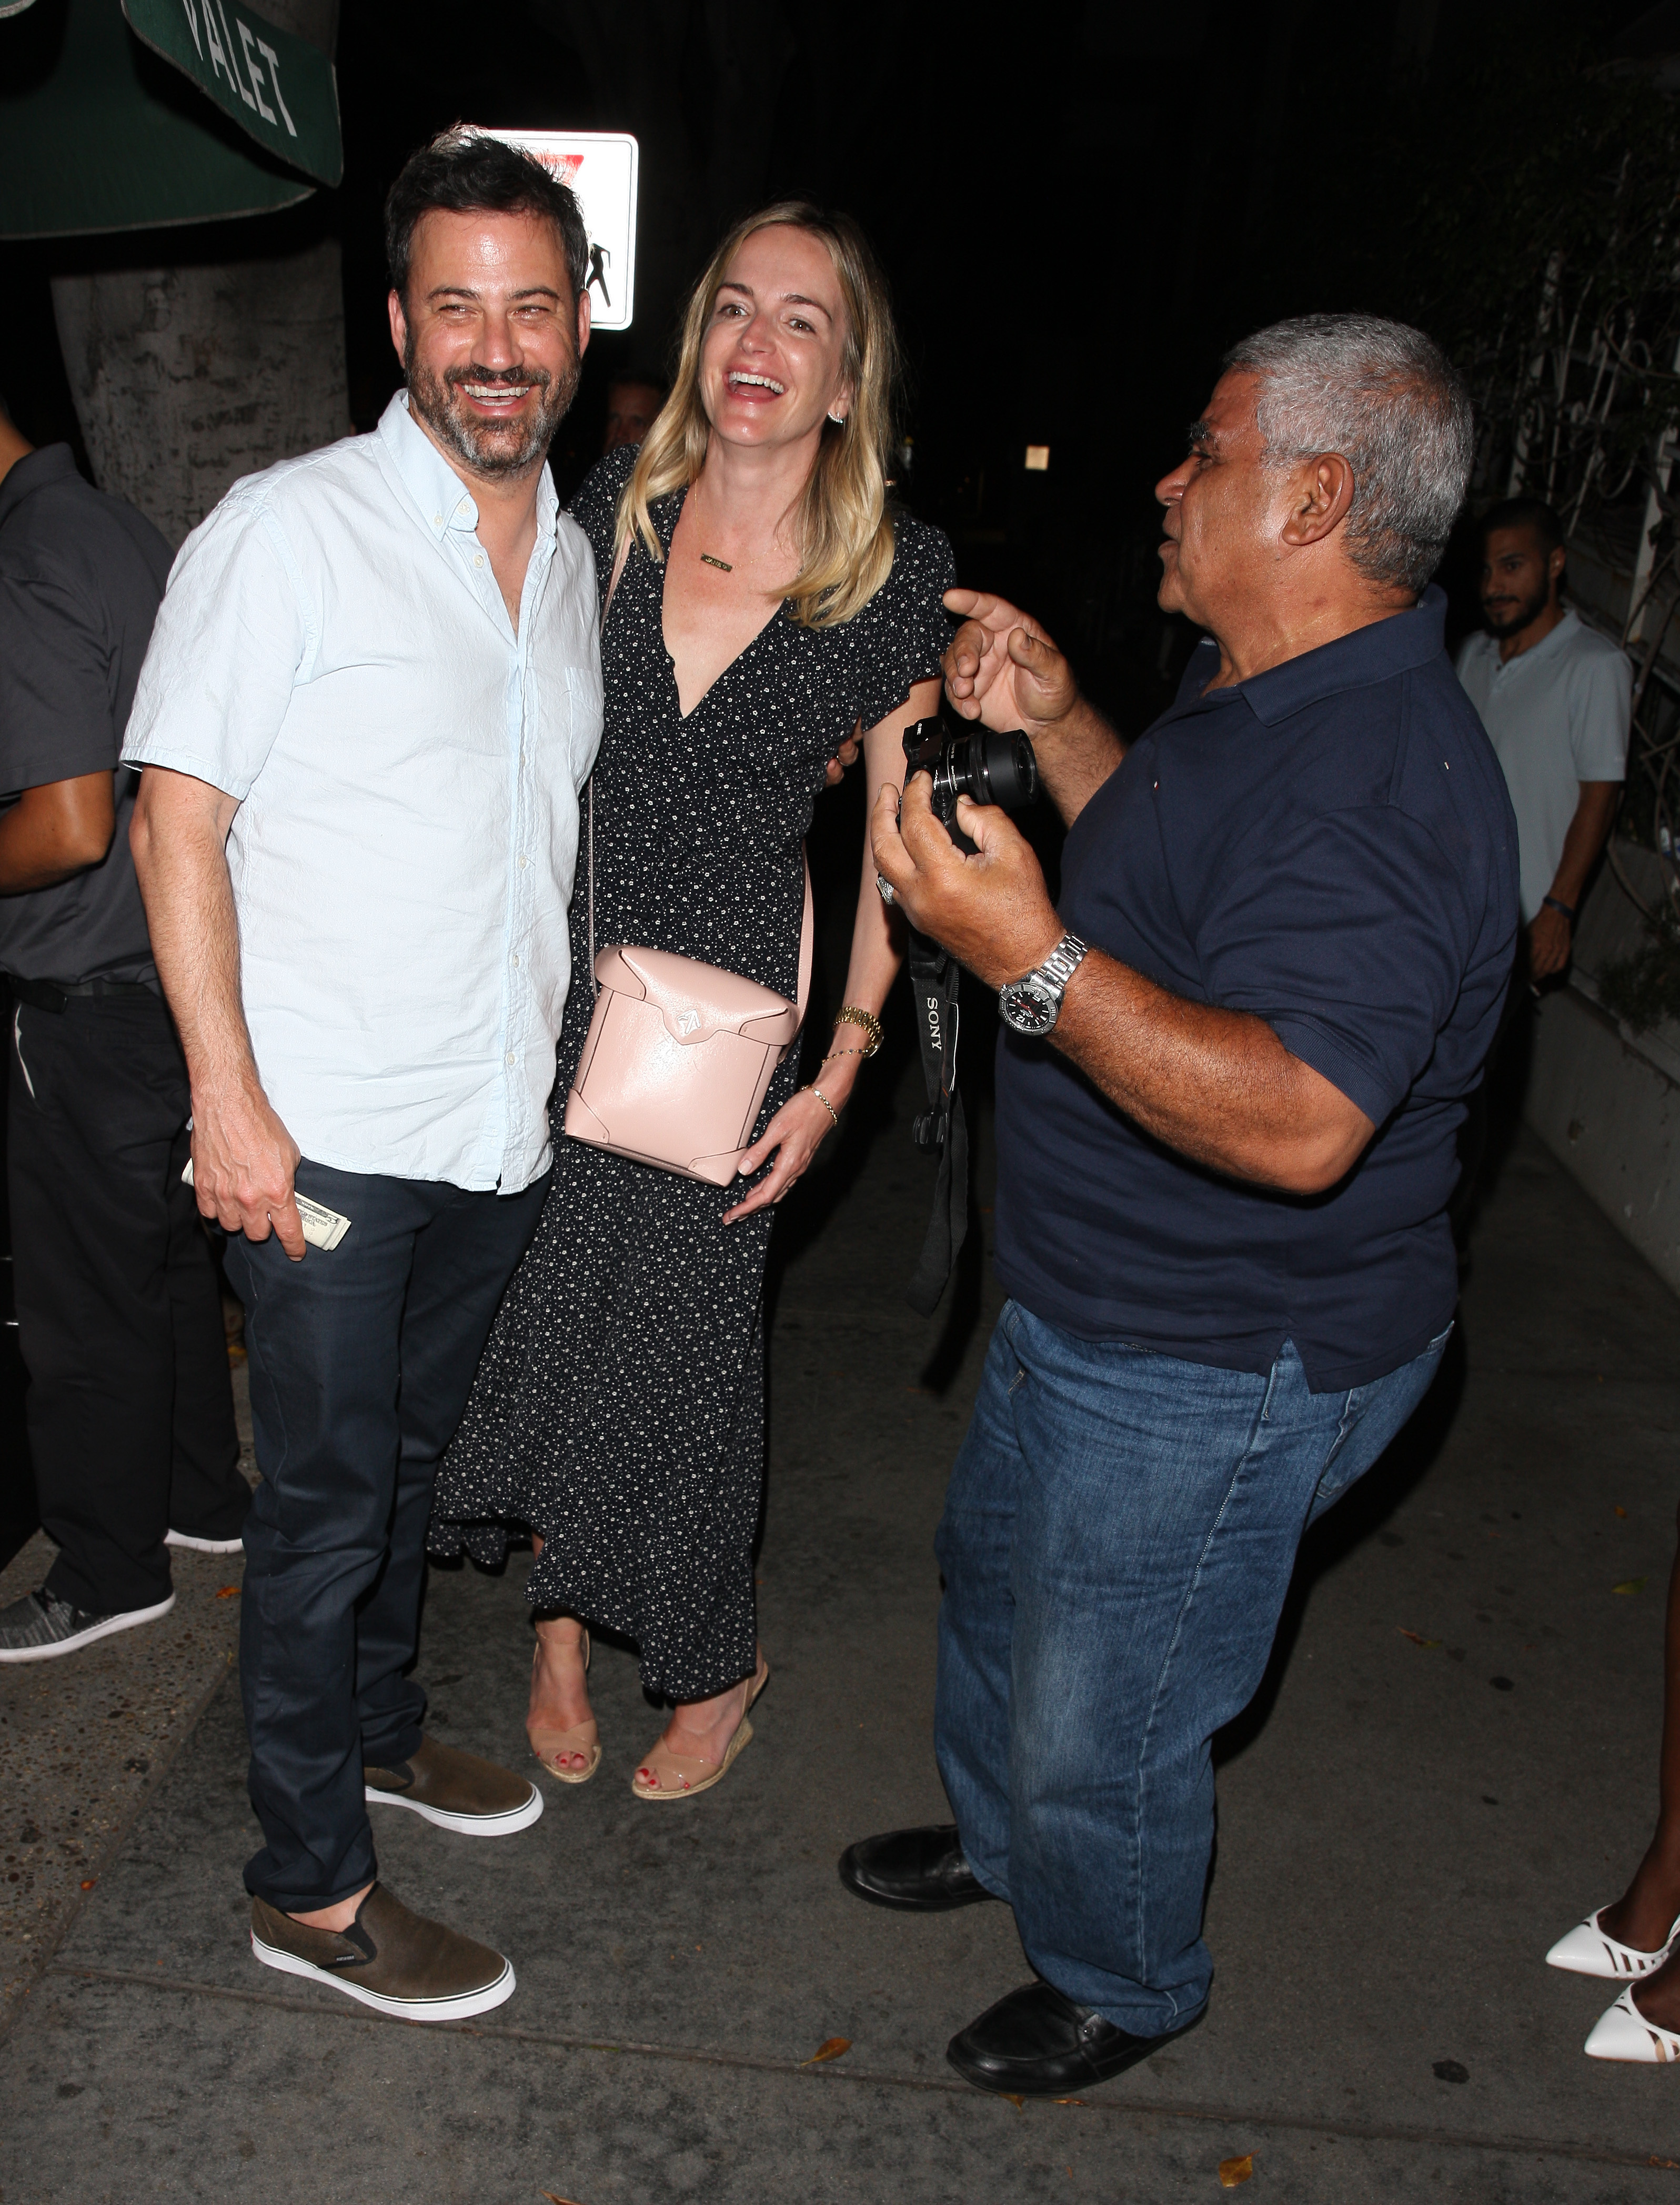 Jimmy Kimmel and his wife Molly McNearney grab dinner at Madeo Restaurant with friends in Los Angeles on Sept. 4, 2017.